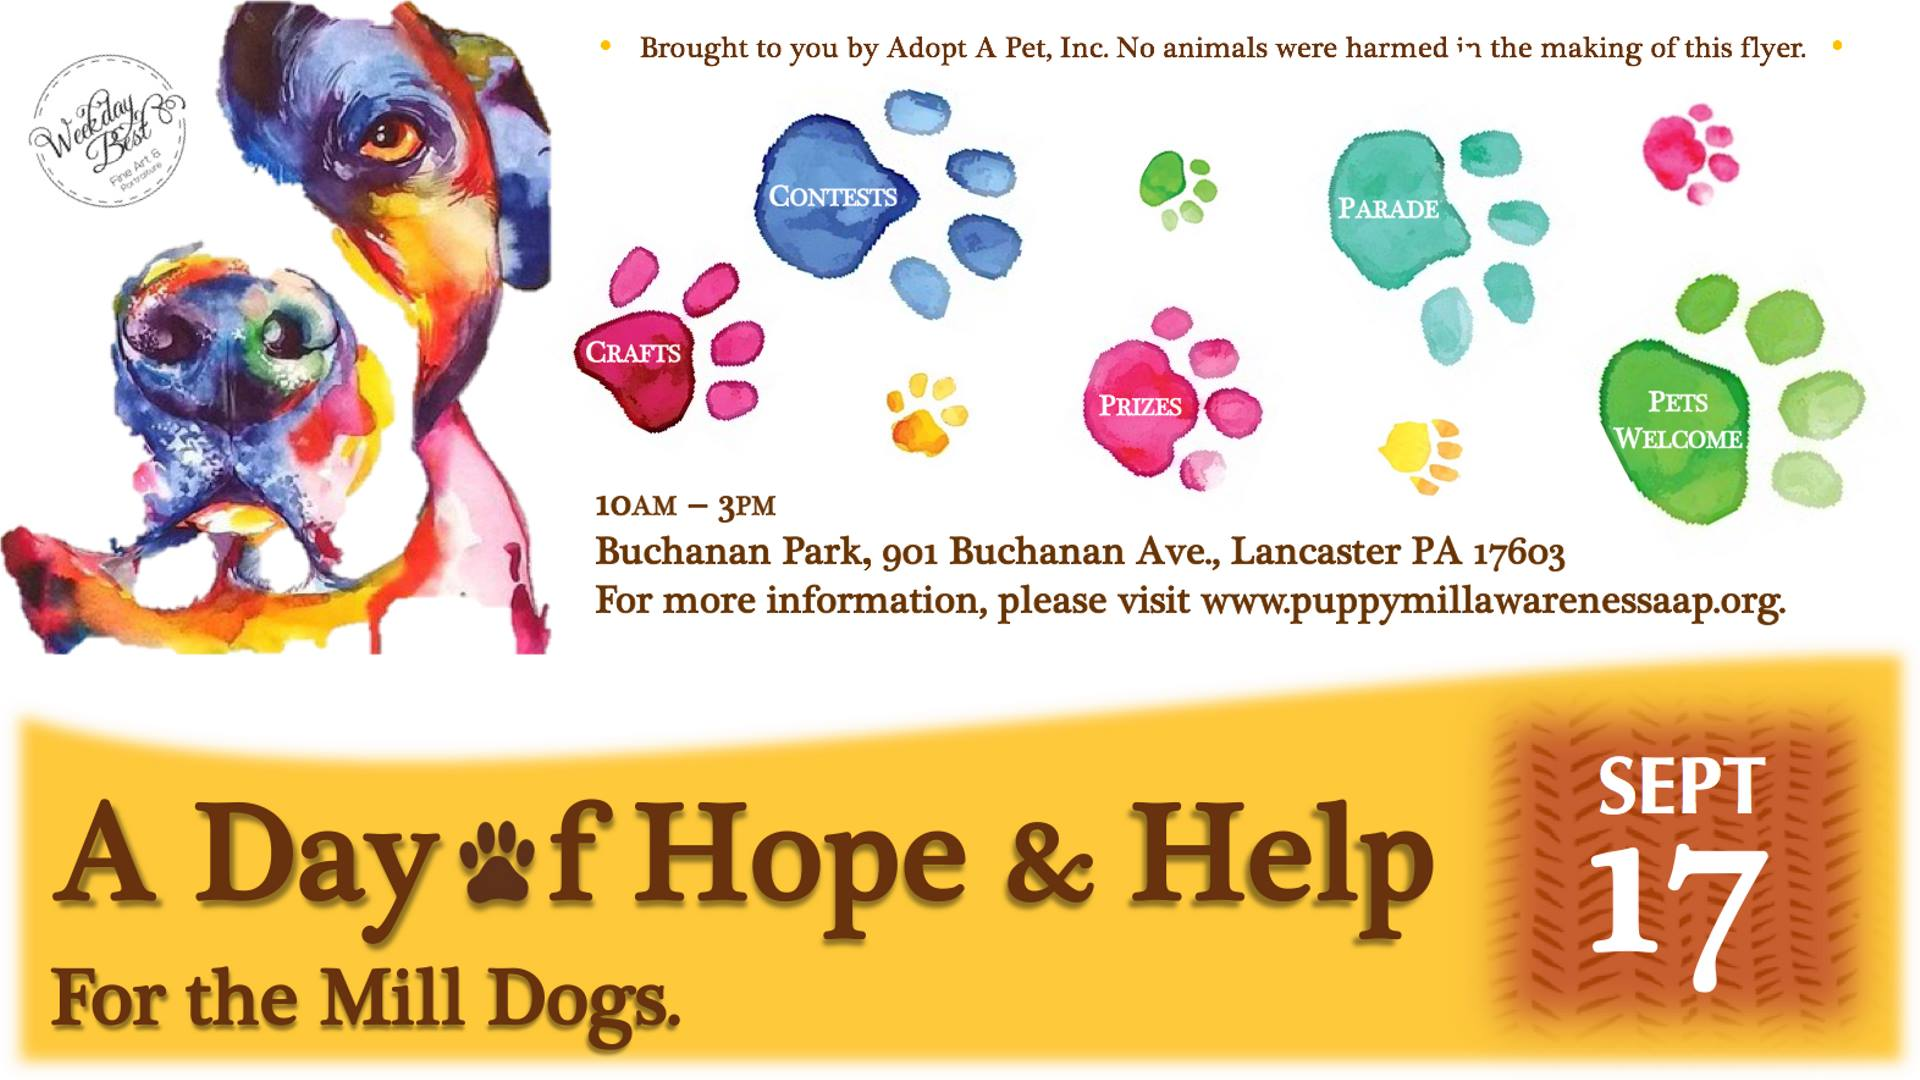 A Day of Hope & Help for the Mill Dogs - Sept 17th